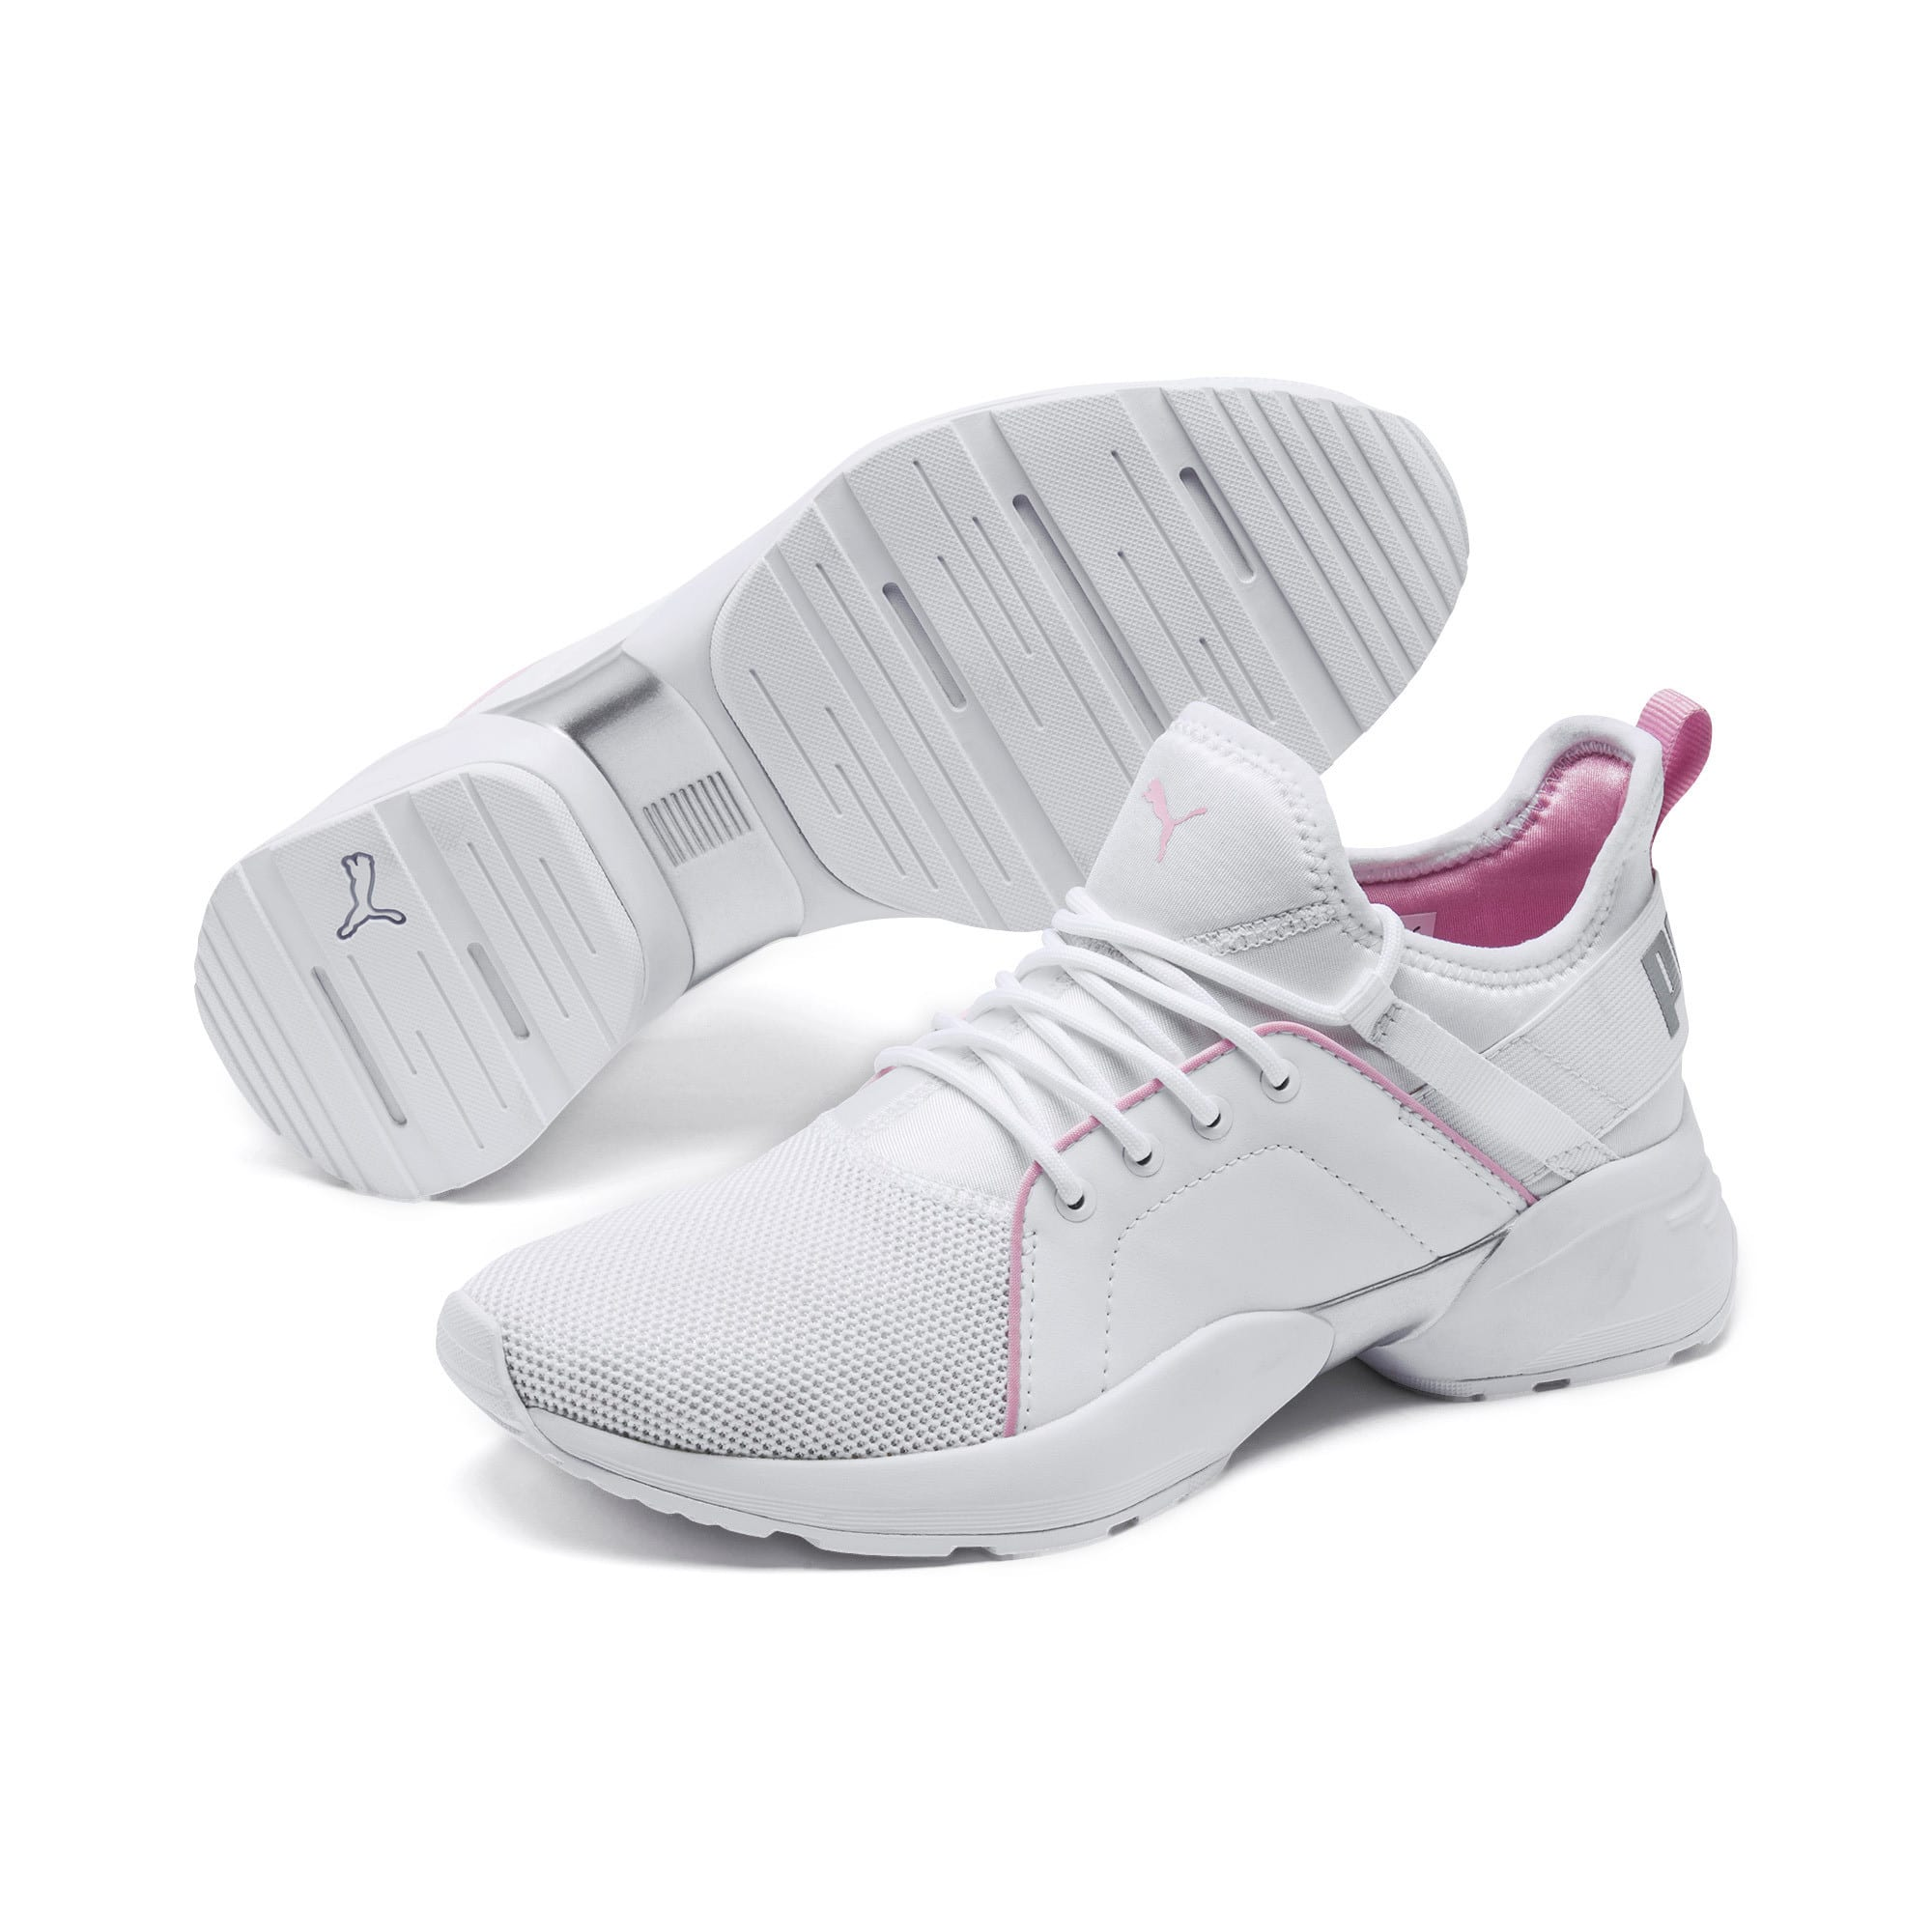 Sirena Women's Training Shoes, Puma White-Pale Pink, large